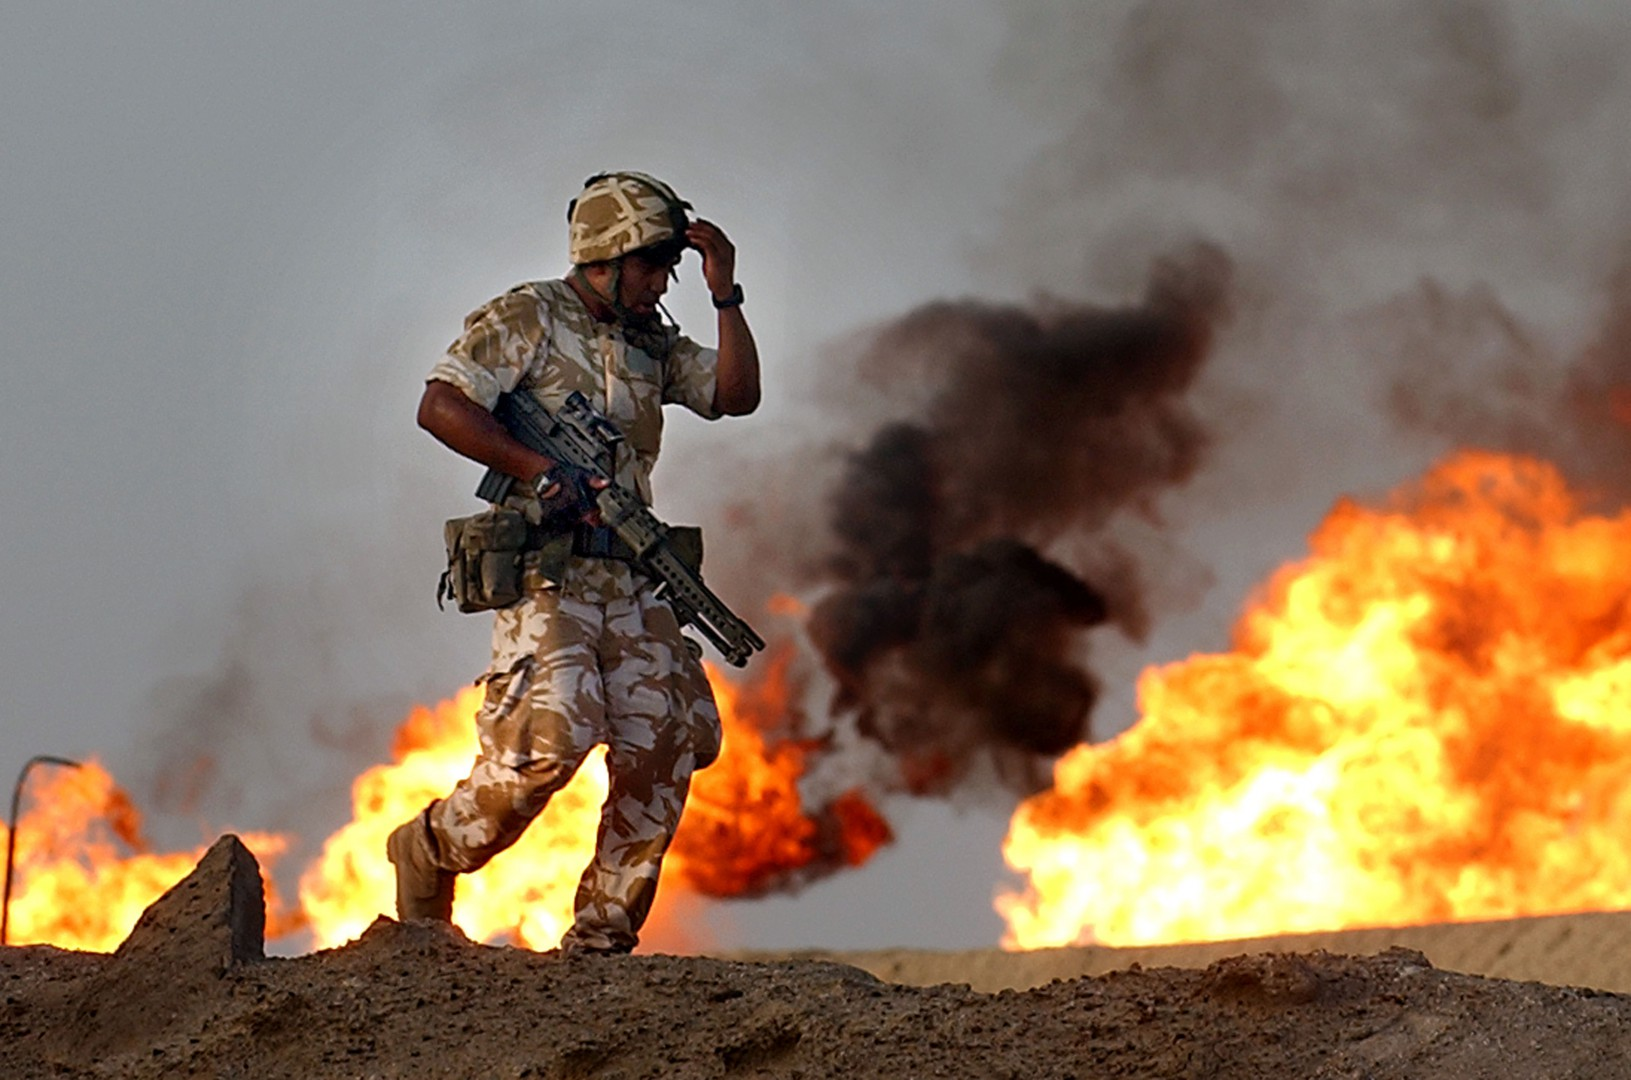 File photo dated 26/09/03 of British troops from the 2nd Battalion Light Infantry during an evening patrol targeting oil smugglers at a gas and oil separation plant in Rauallah, Southern Iraq. PRESS ASSOCIATION Photo. Issue date: Tuesday July 5, 2016. See POLITICS Chilcot PA Stories. Photo credit should read: David Cheskin/PA Wire